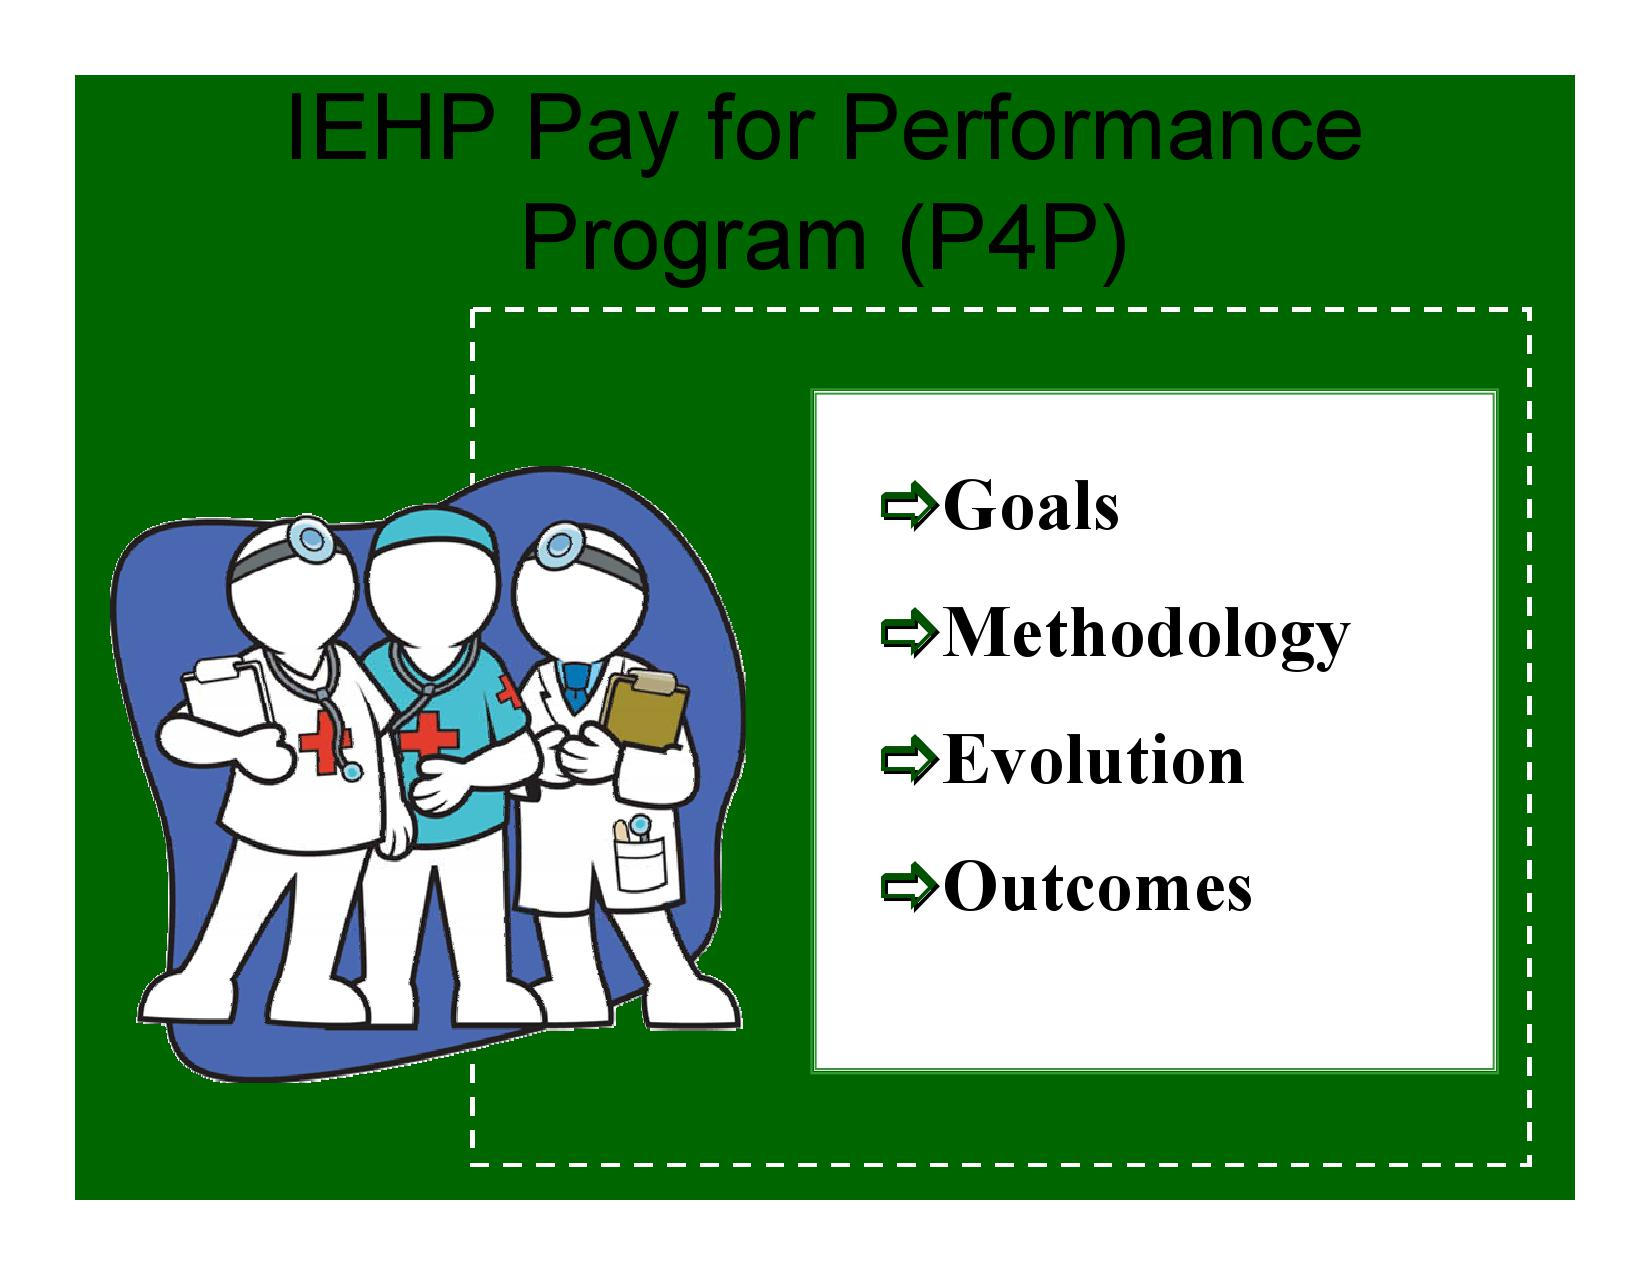 Shot clipart hepatitis b vaccine. Guide iehp pay for